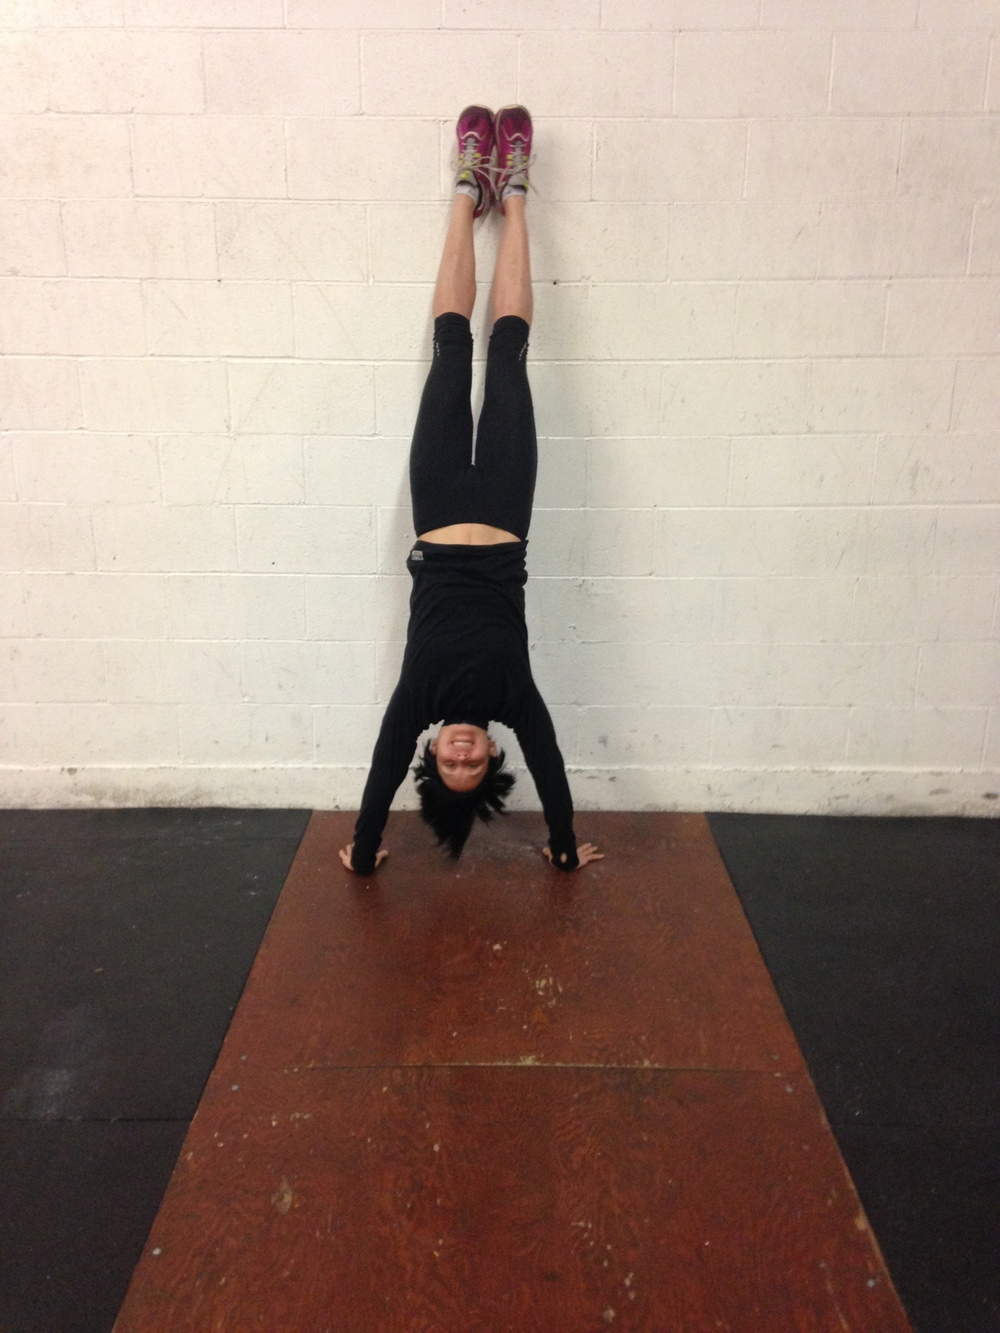 Robin showing an outstanding handstand